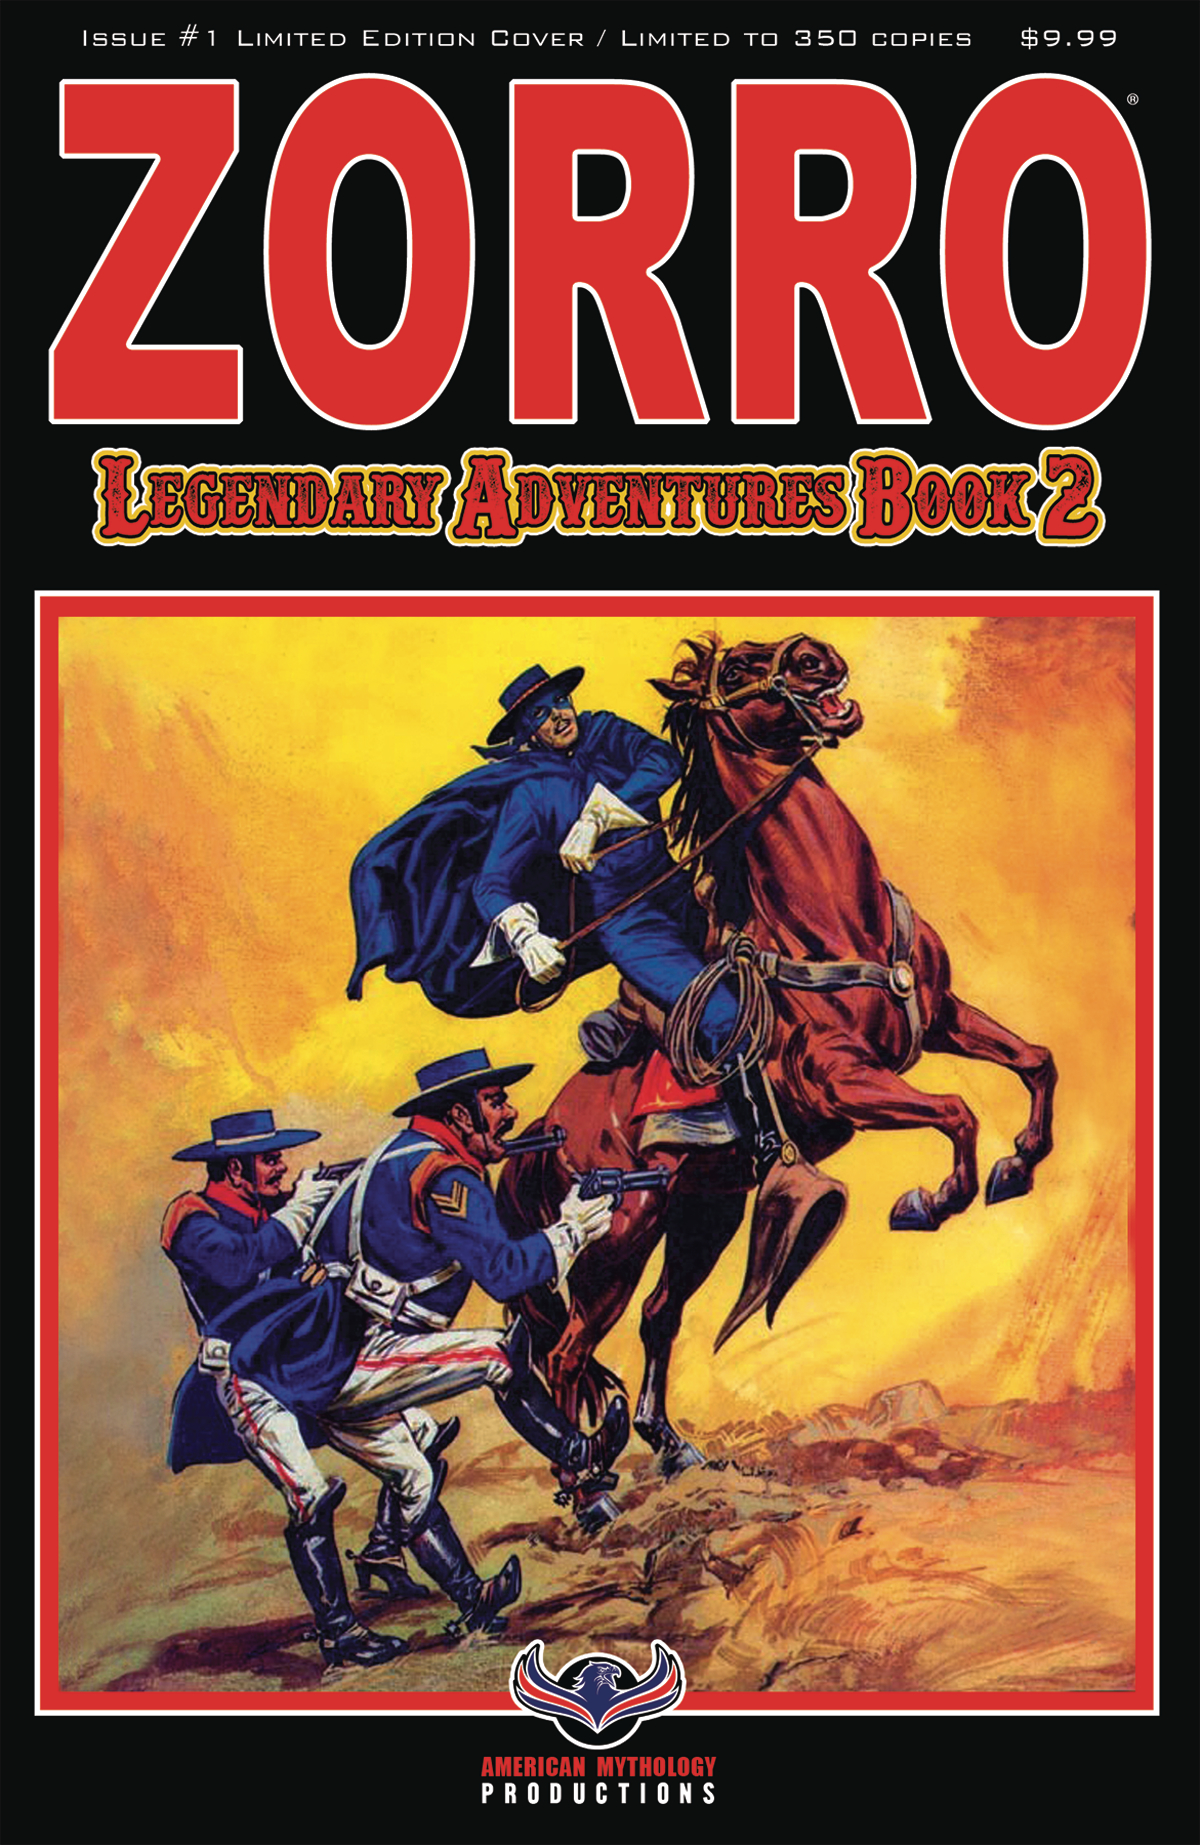 ZORRO LEGENDARY ADVENTURES BOOK 2 #1 BLAZING BLADES LTD ED C